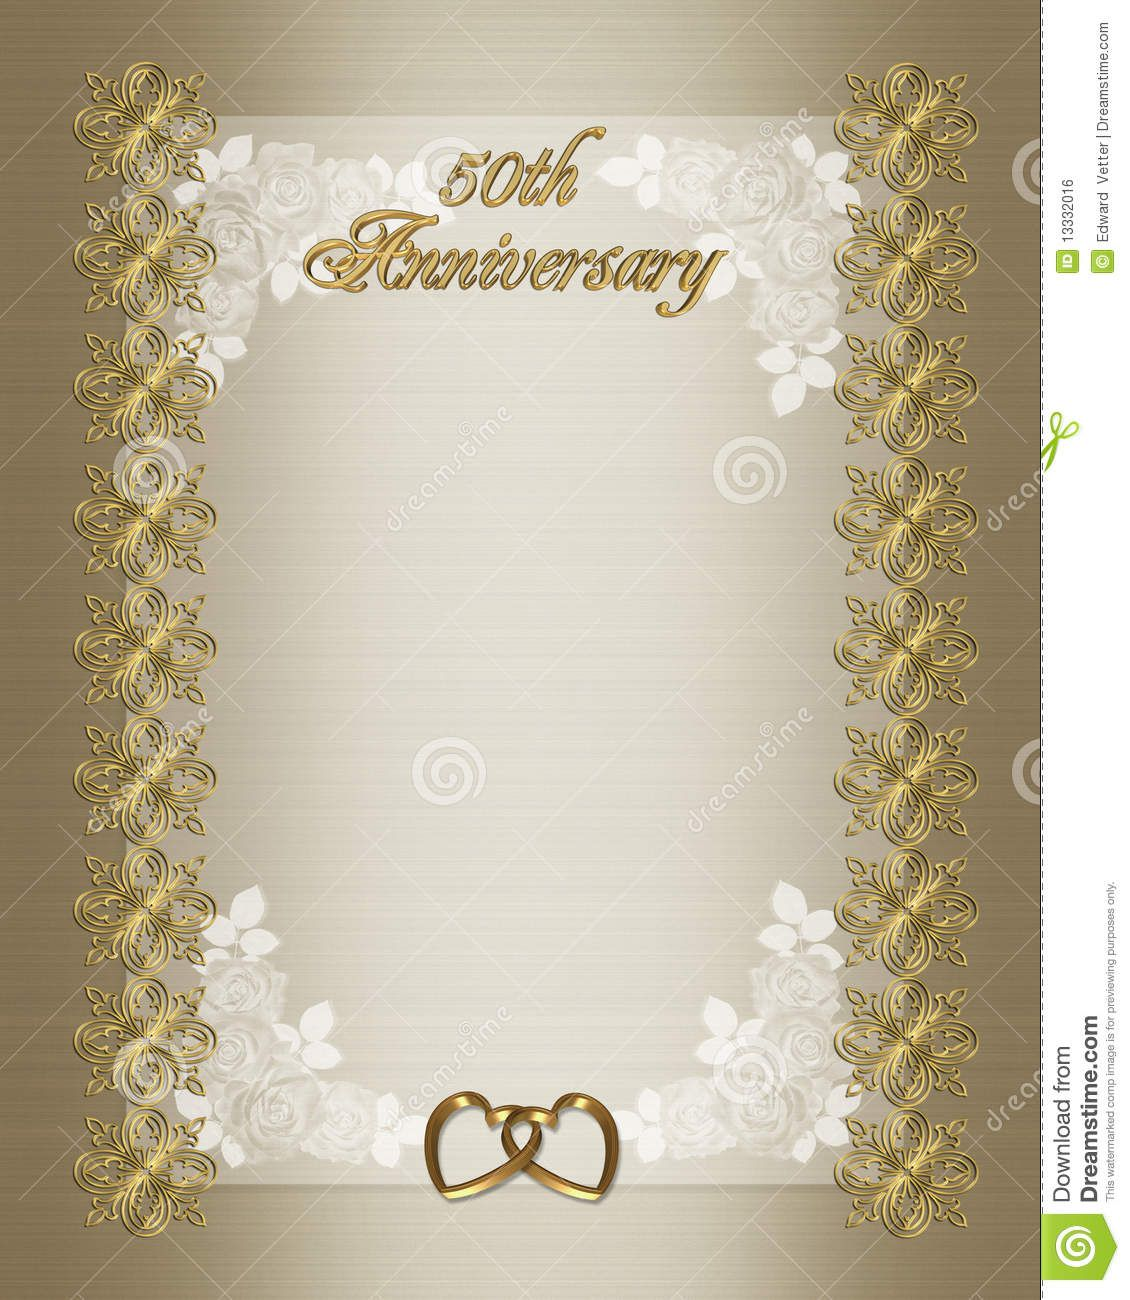 004 Remarkable 50th Wedding Anniversary Party Invitation Template Image  Templates FreeFull